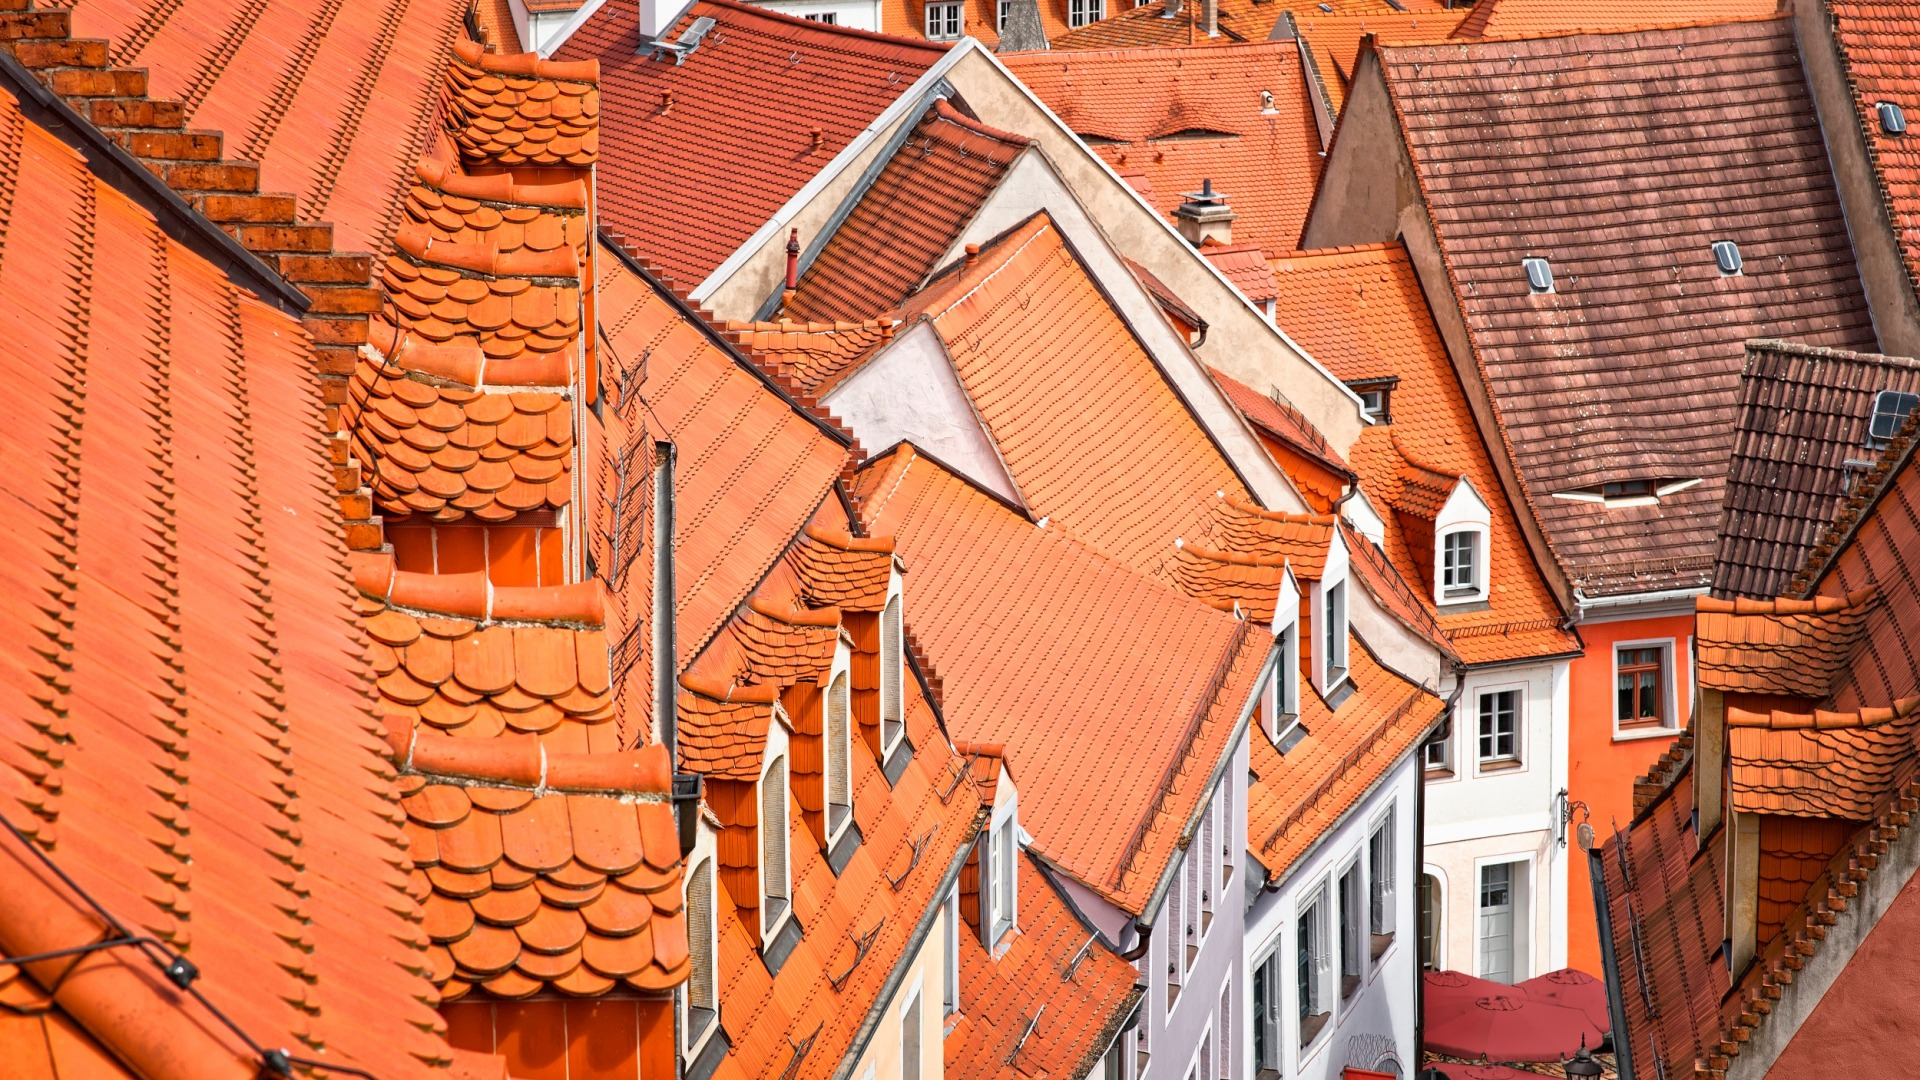 Download-color-roof-tile-section-city-in-resolution-1920x1080-wallpaper-wp3605108